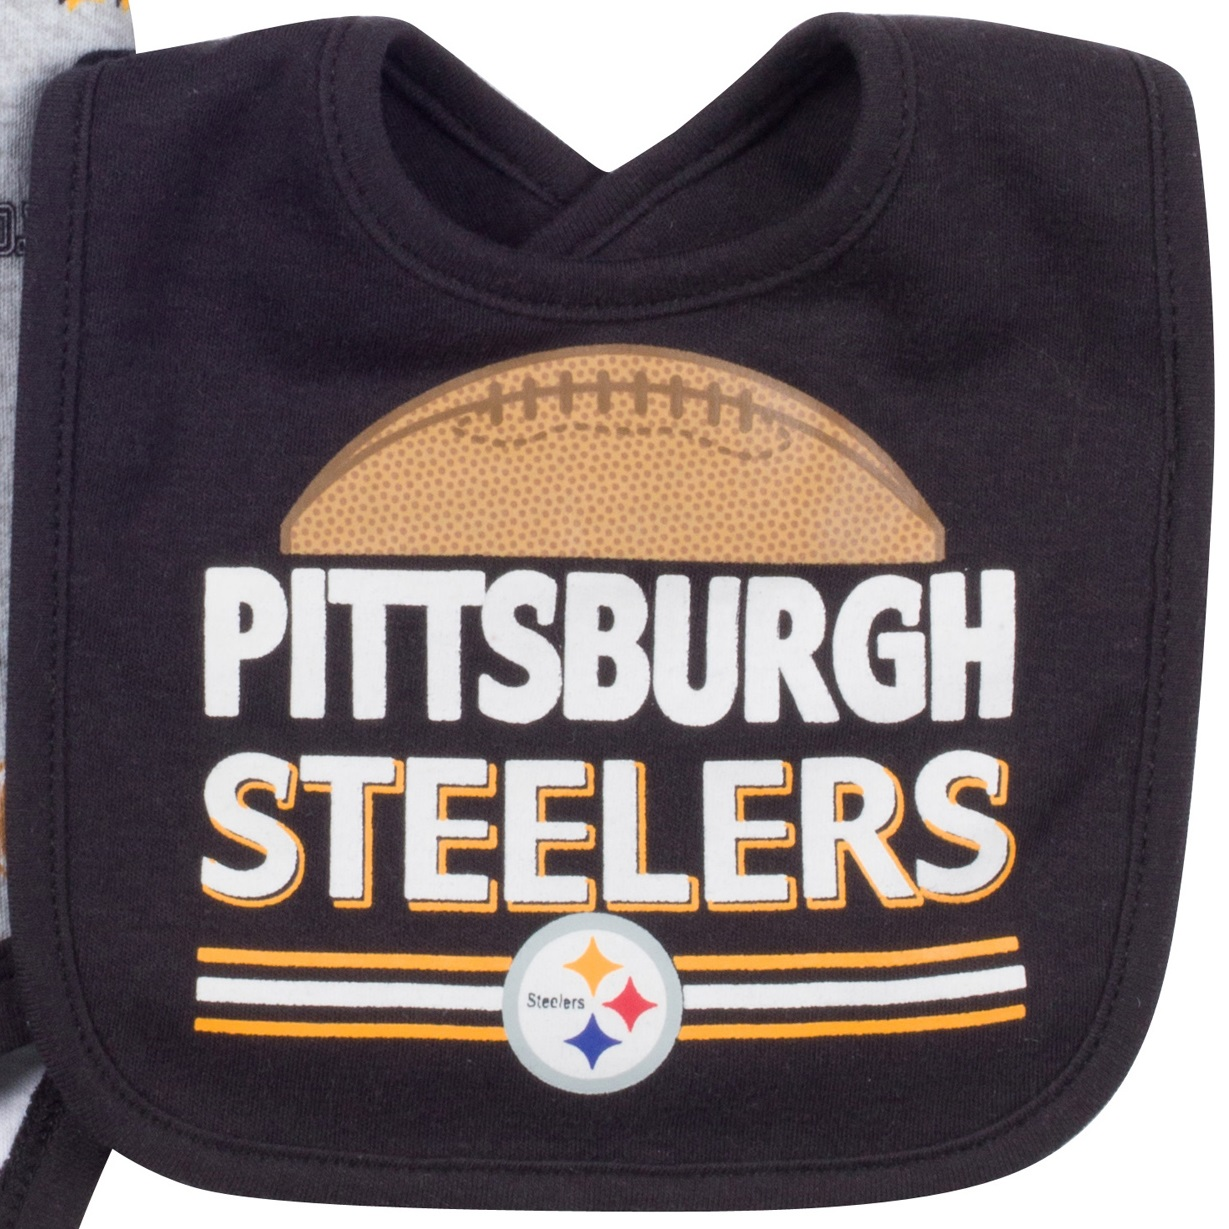 steelers-baby-bodysuit-bib-cap-set-1510-grey-print-bib.jpg